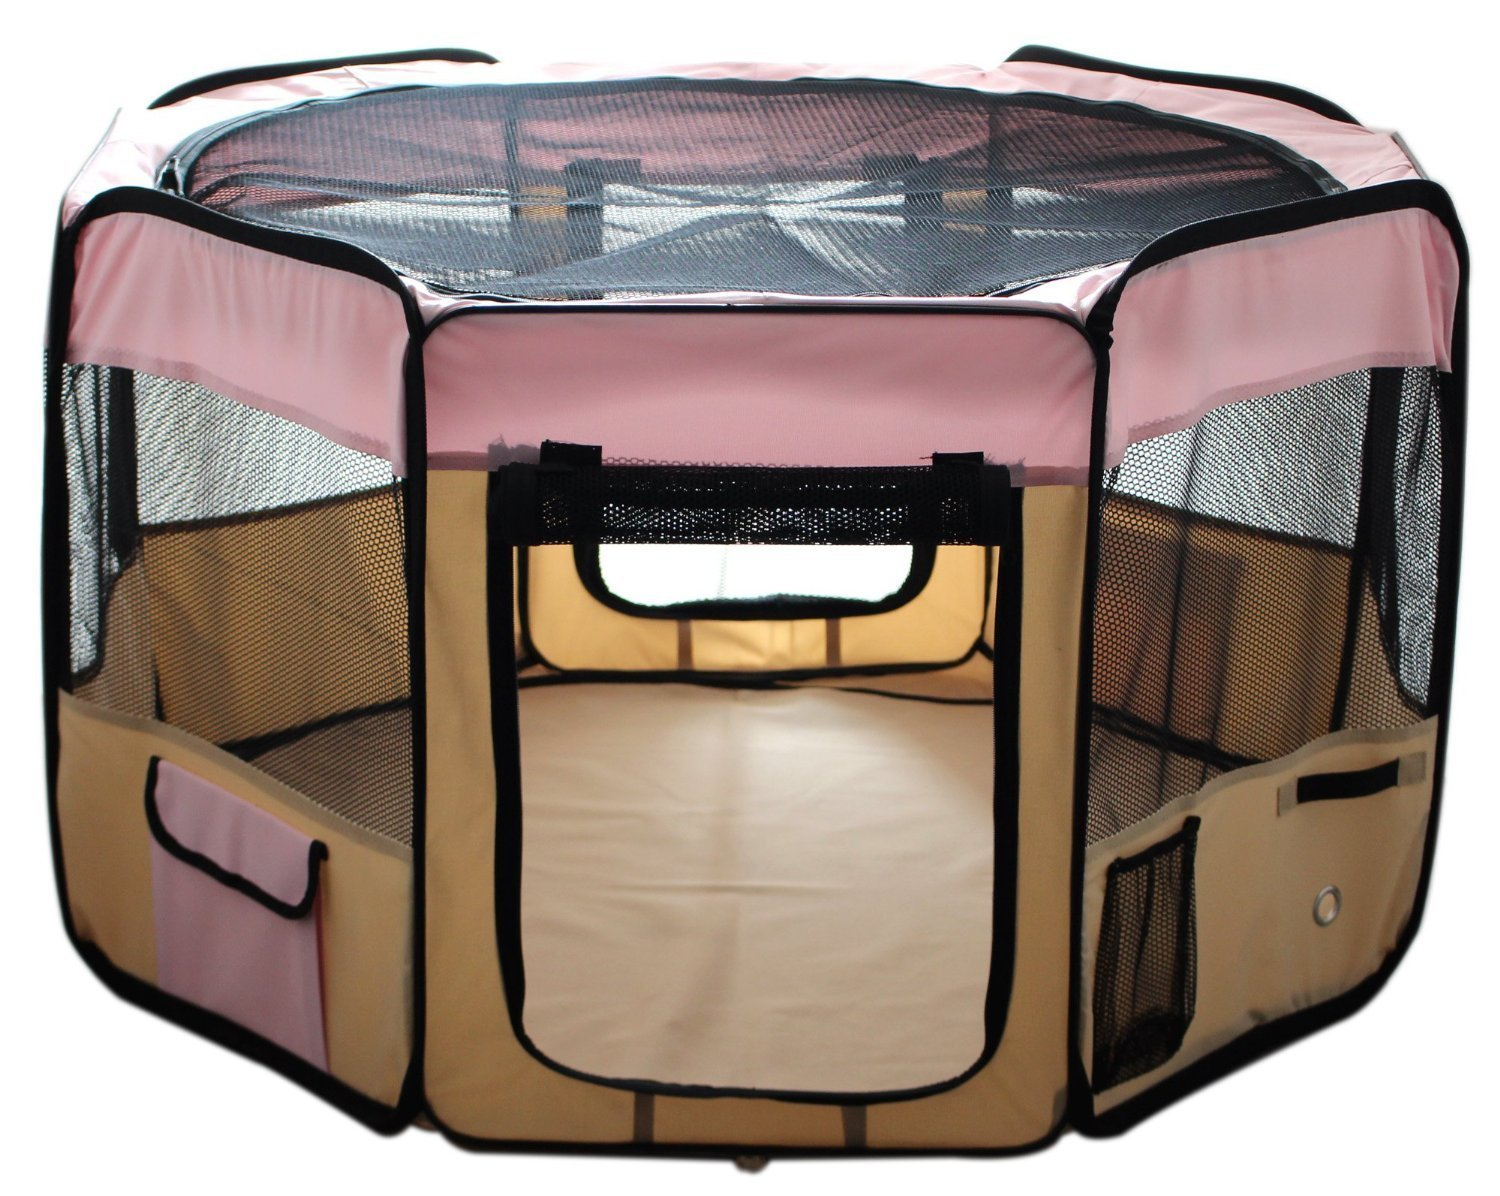 ESK COLLECTION Playpen